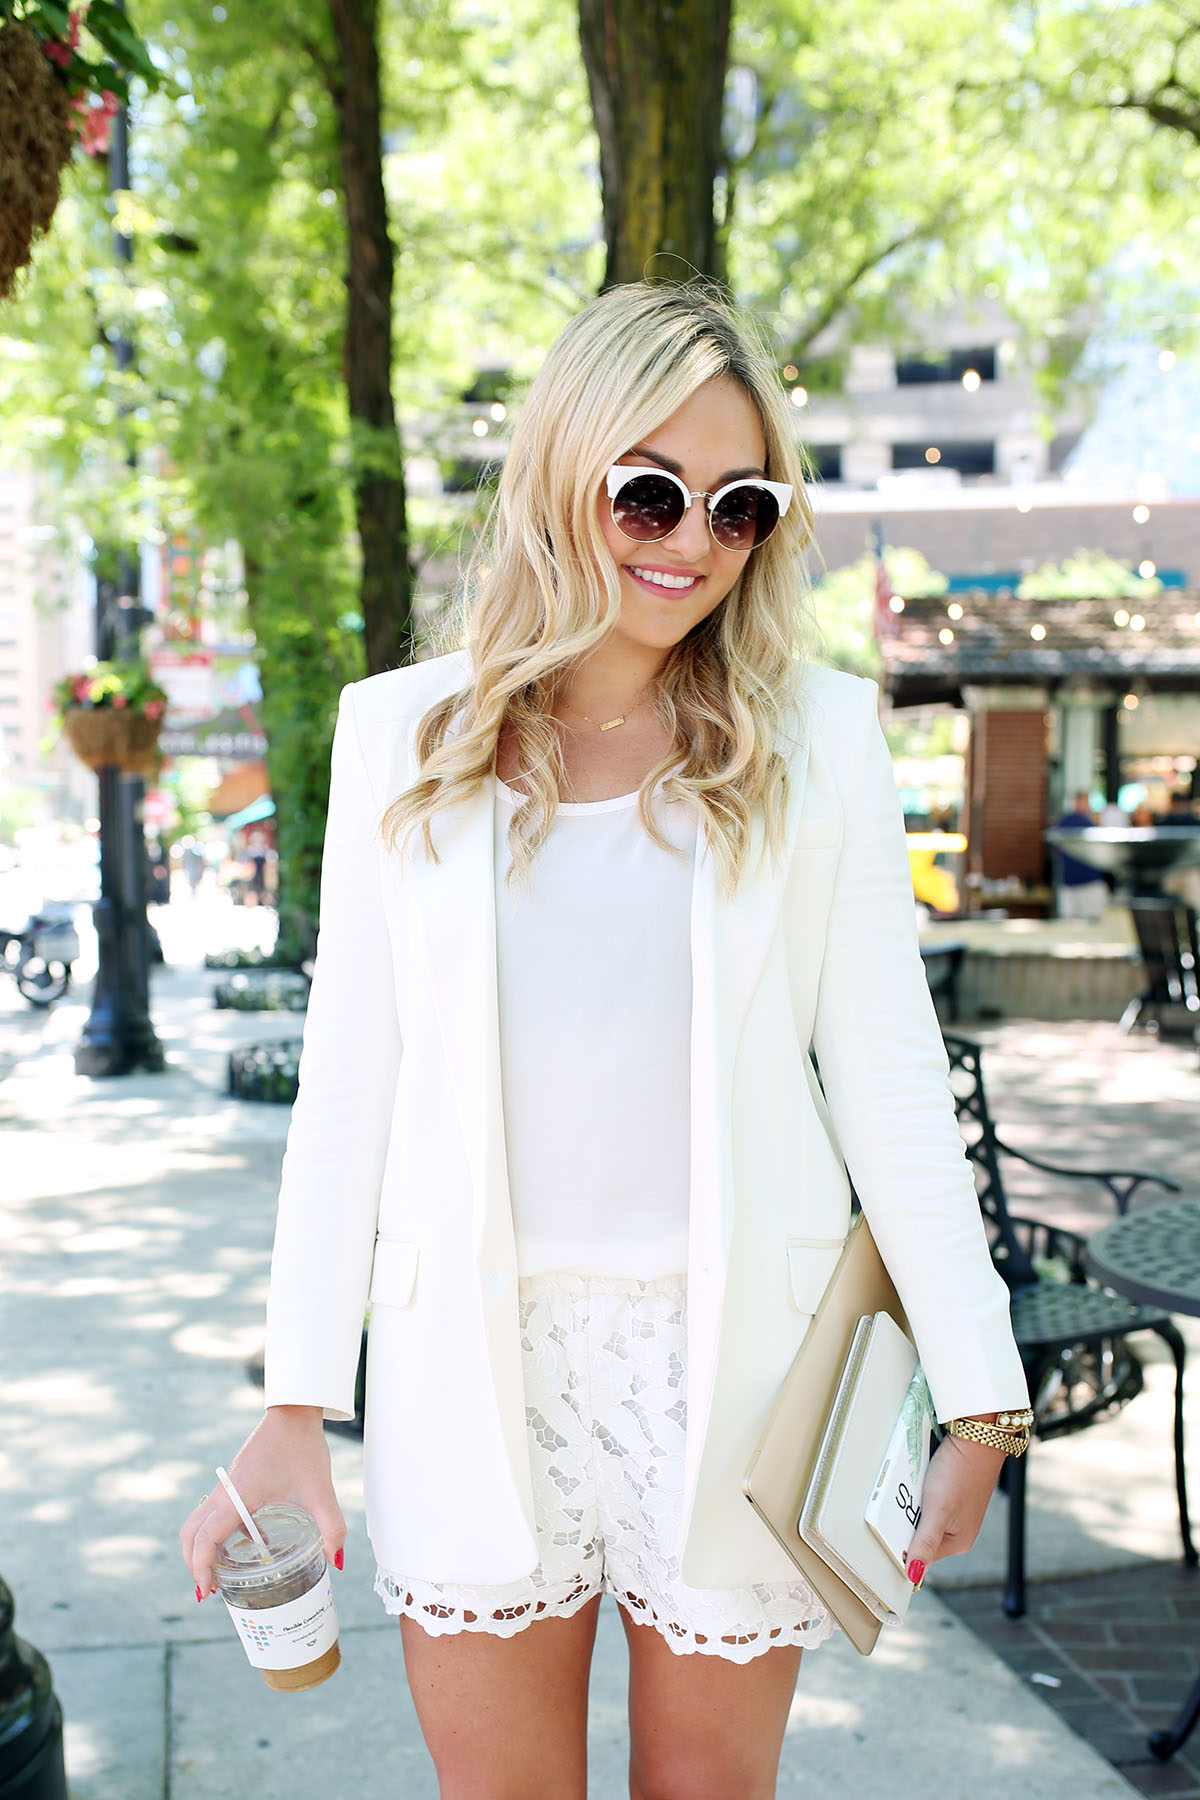 Bows & Sequins wearing an all-white outfit that's perfect for going from the workday to dinner and drinks! Pair a long-line white blazer with a silky tank and lace shorts for a chic summertime look.